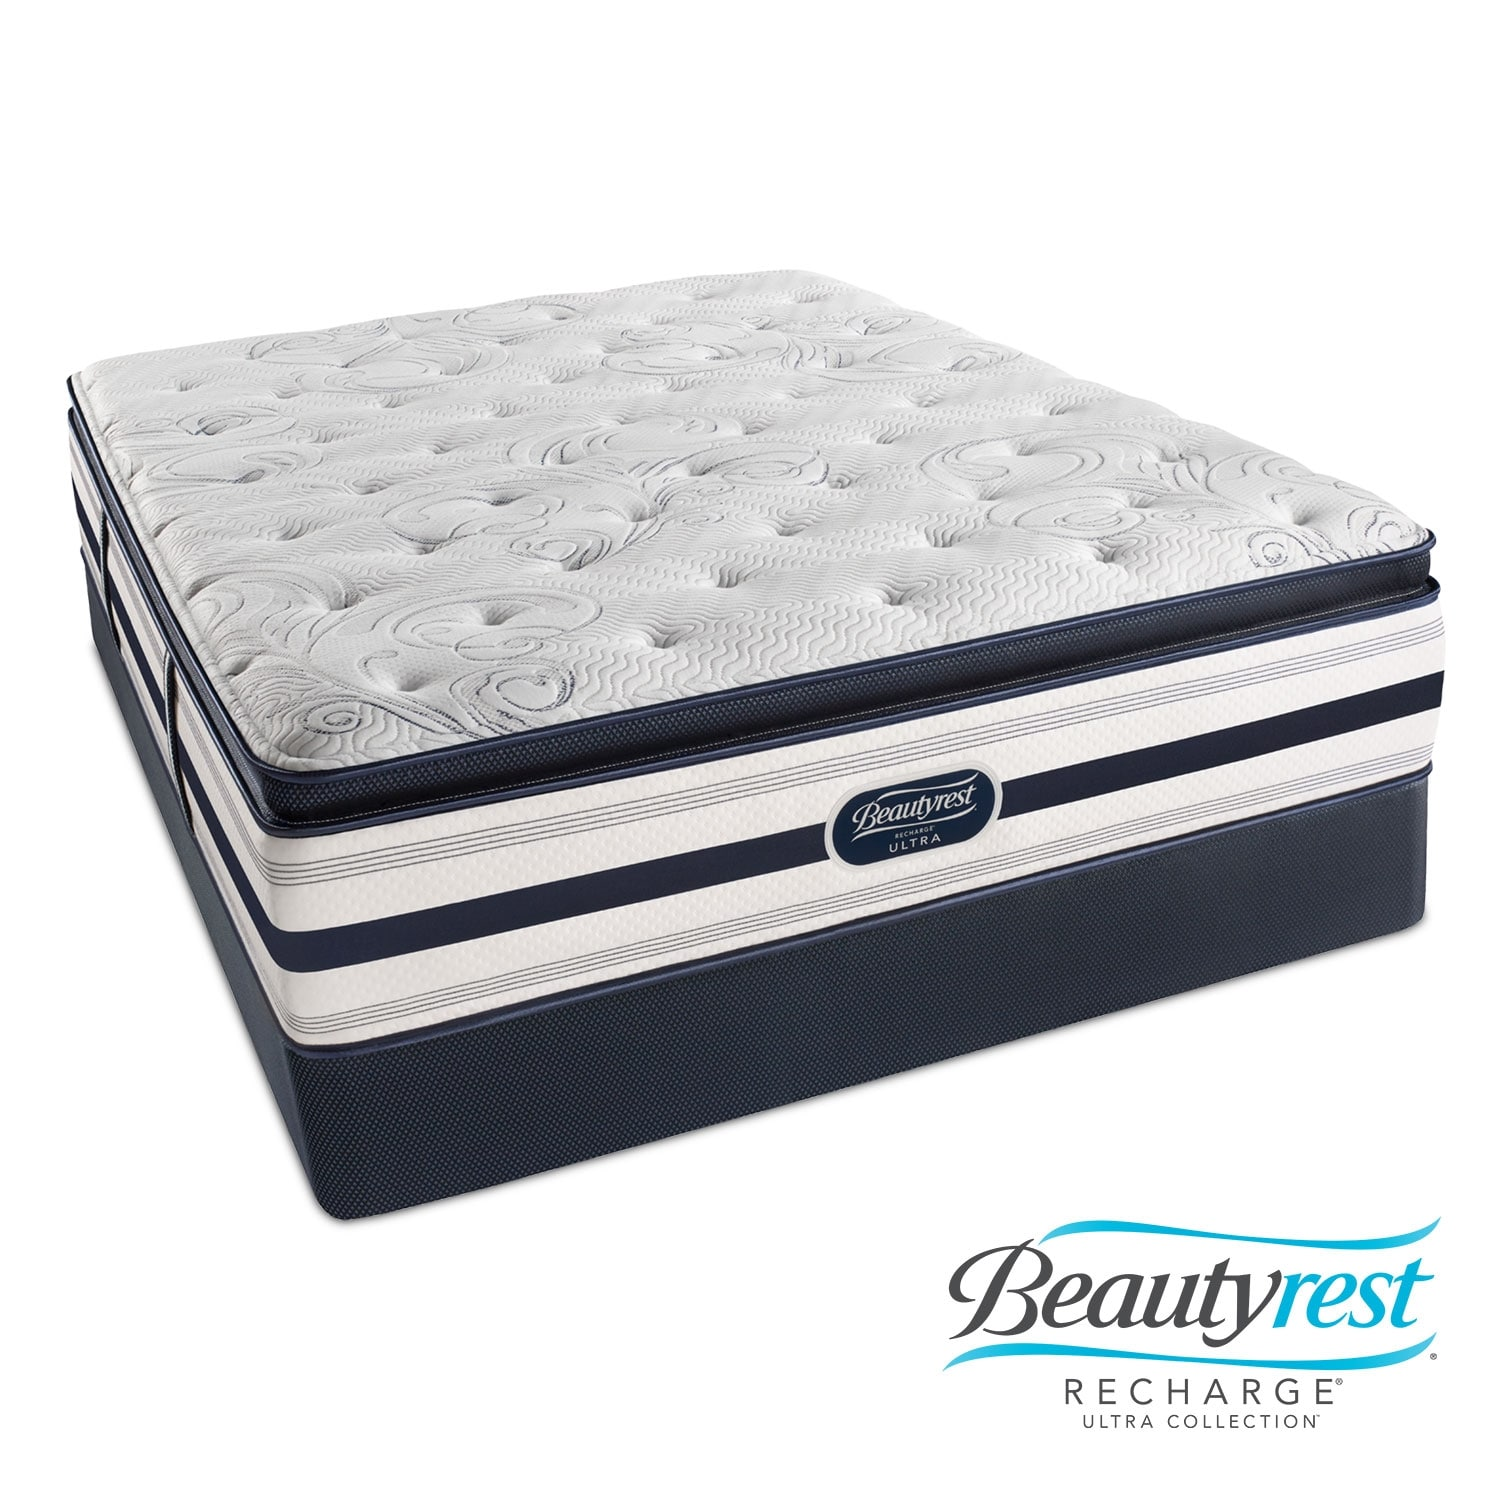 Mattresses and Bedding - Cerise Luxury Firm PT Full Mattress/Foundation Set